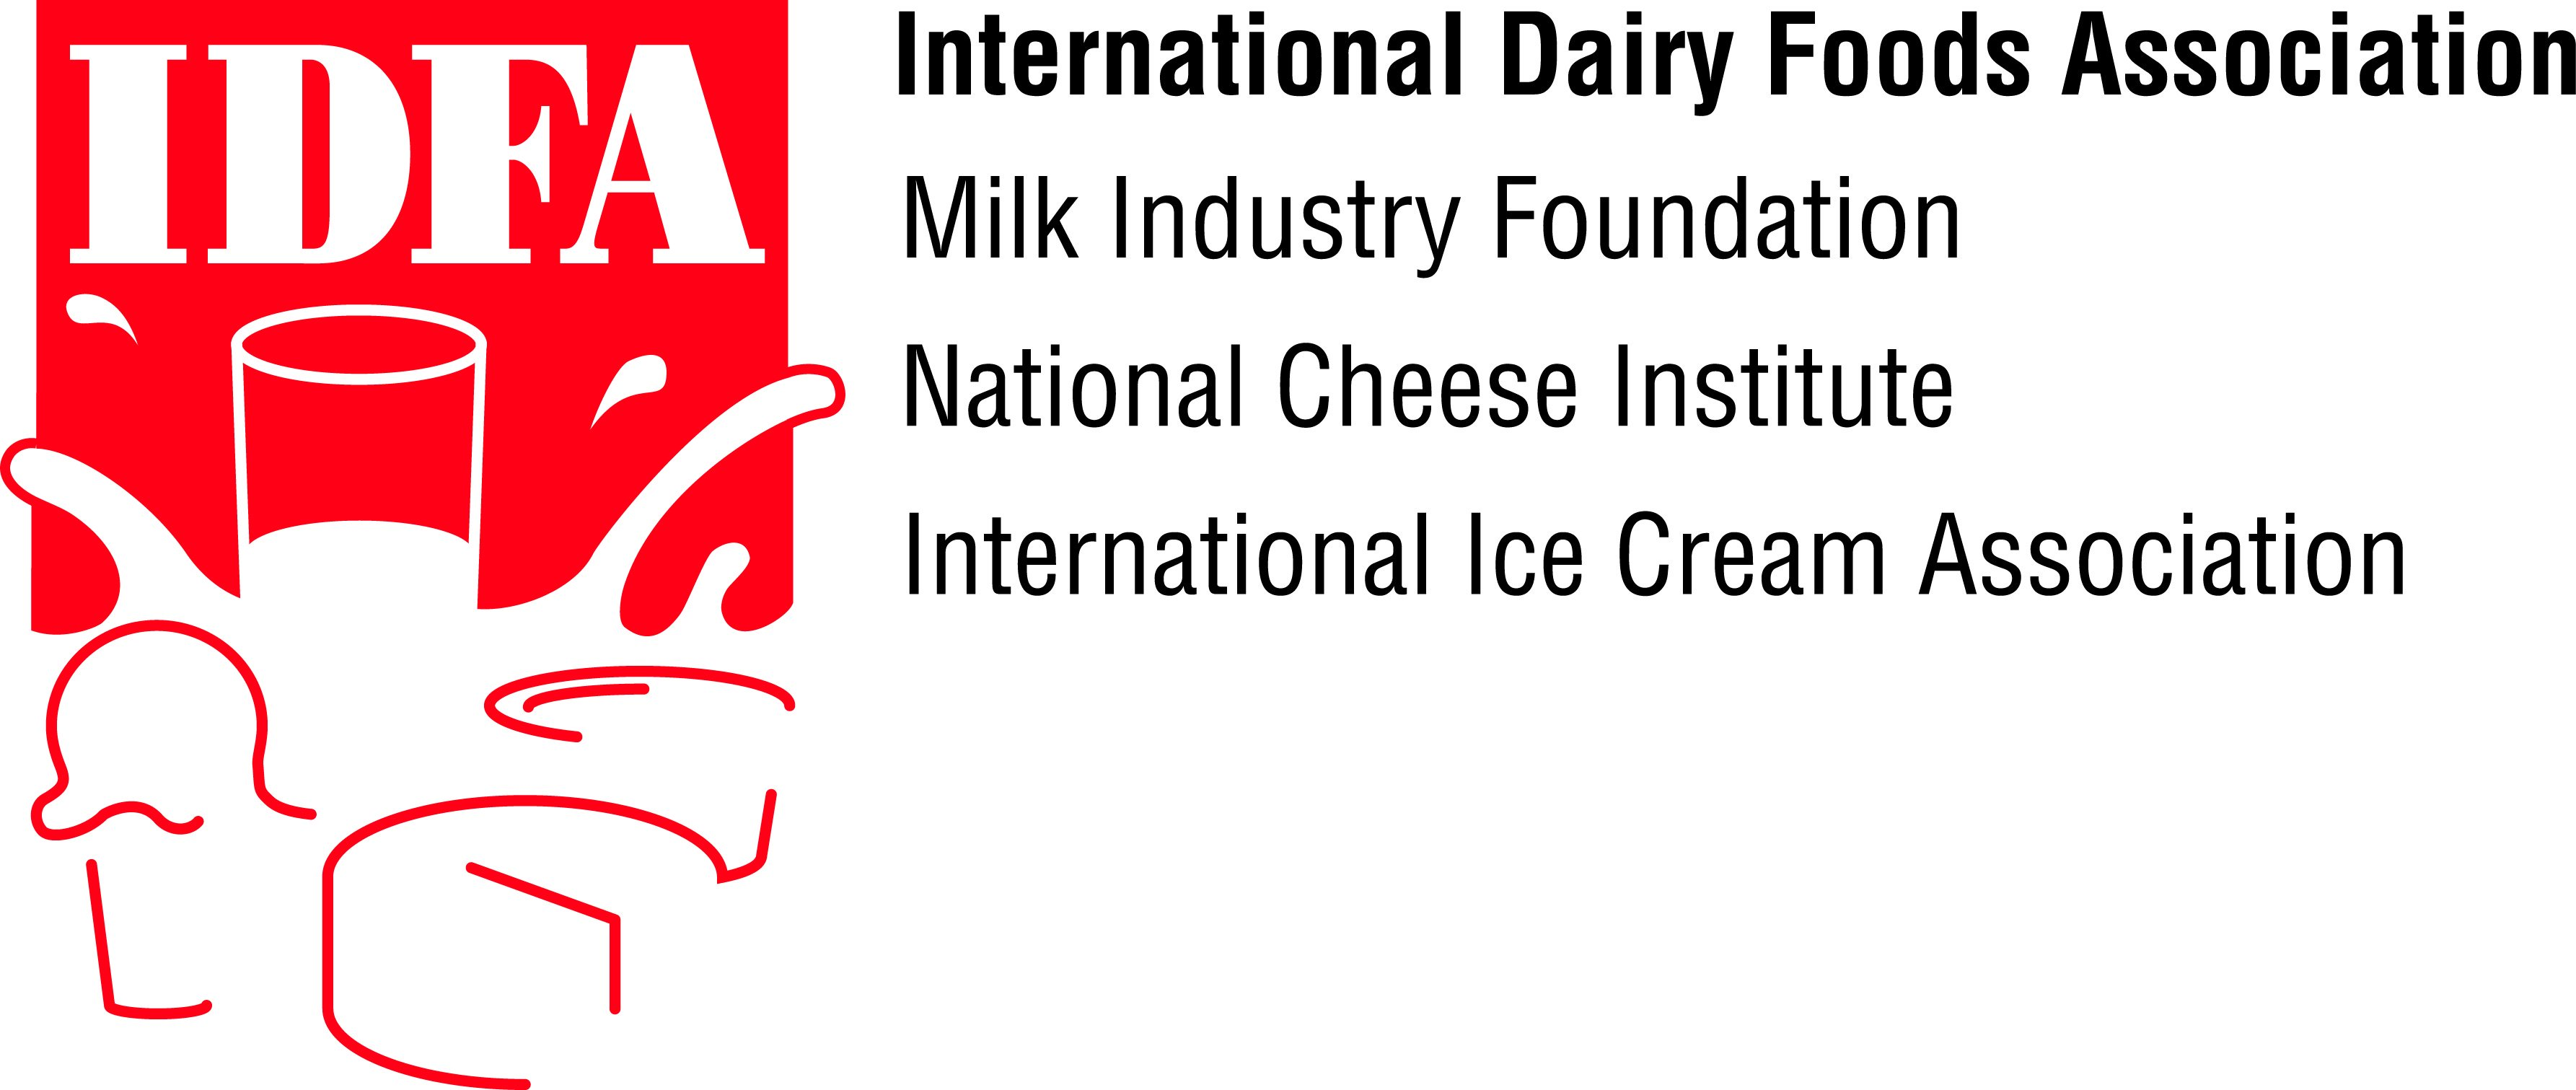 International Dairy Foods Association